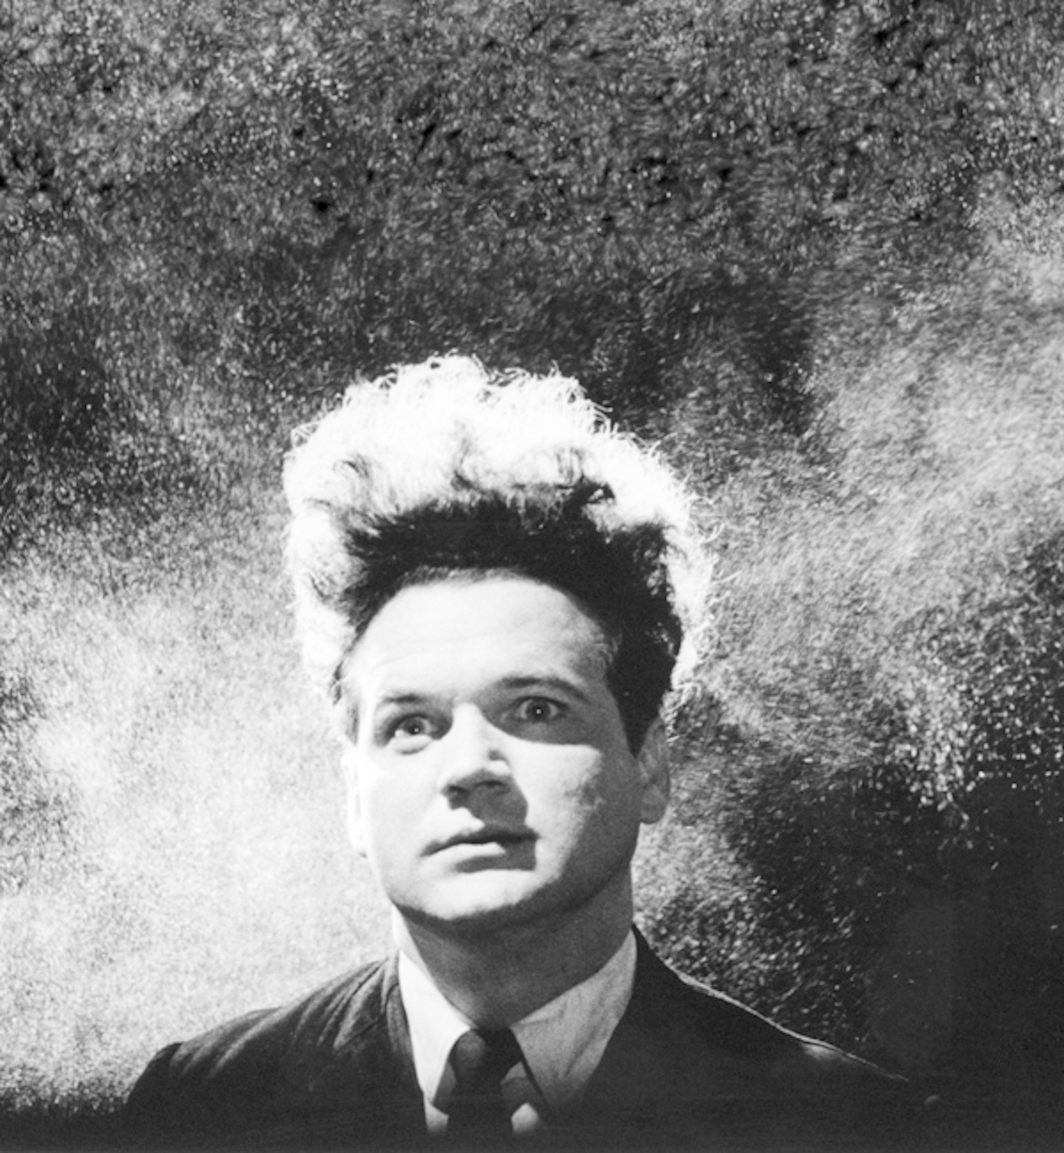 David Lynch, Eraserhead, 1977, 35 mm, black-and-white, sound, 89 minutes. Henry Spencer (John Nance). Photo: Catherine Coulson.